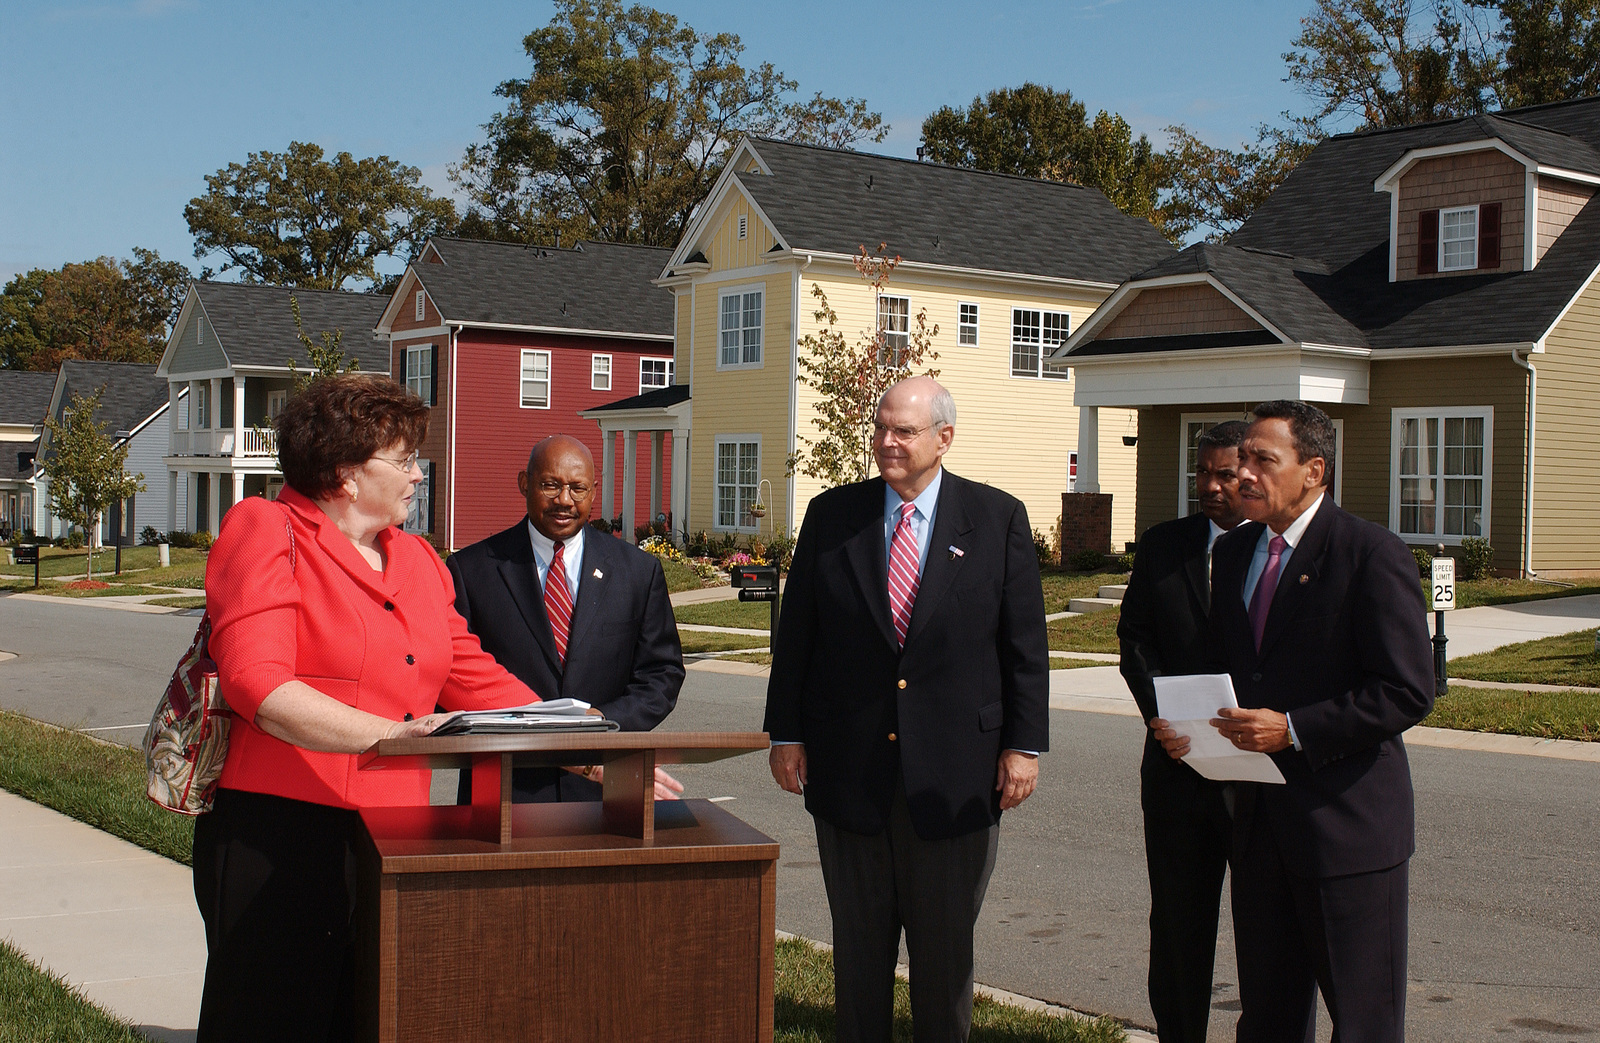 Visit of Secretary Alphonso Jackson to Charlotte, North Carolina, where he toured the Genesis Park Community with North Carolina Congressmen Robin Hayes and Mel Watt, among others